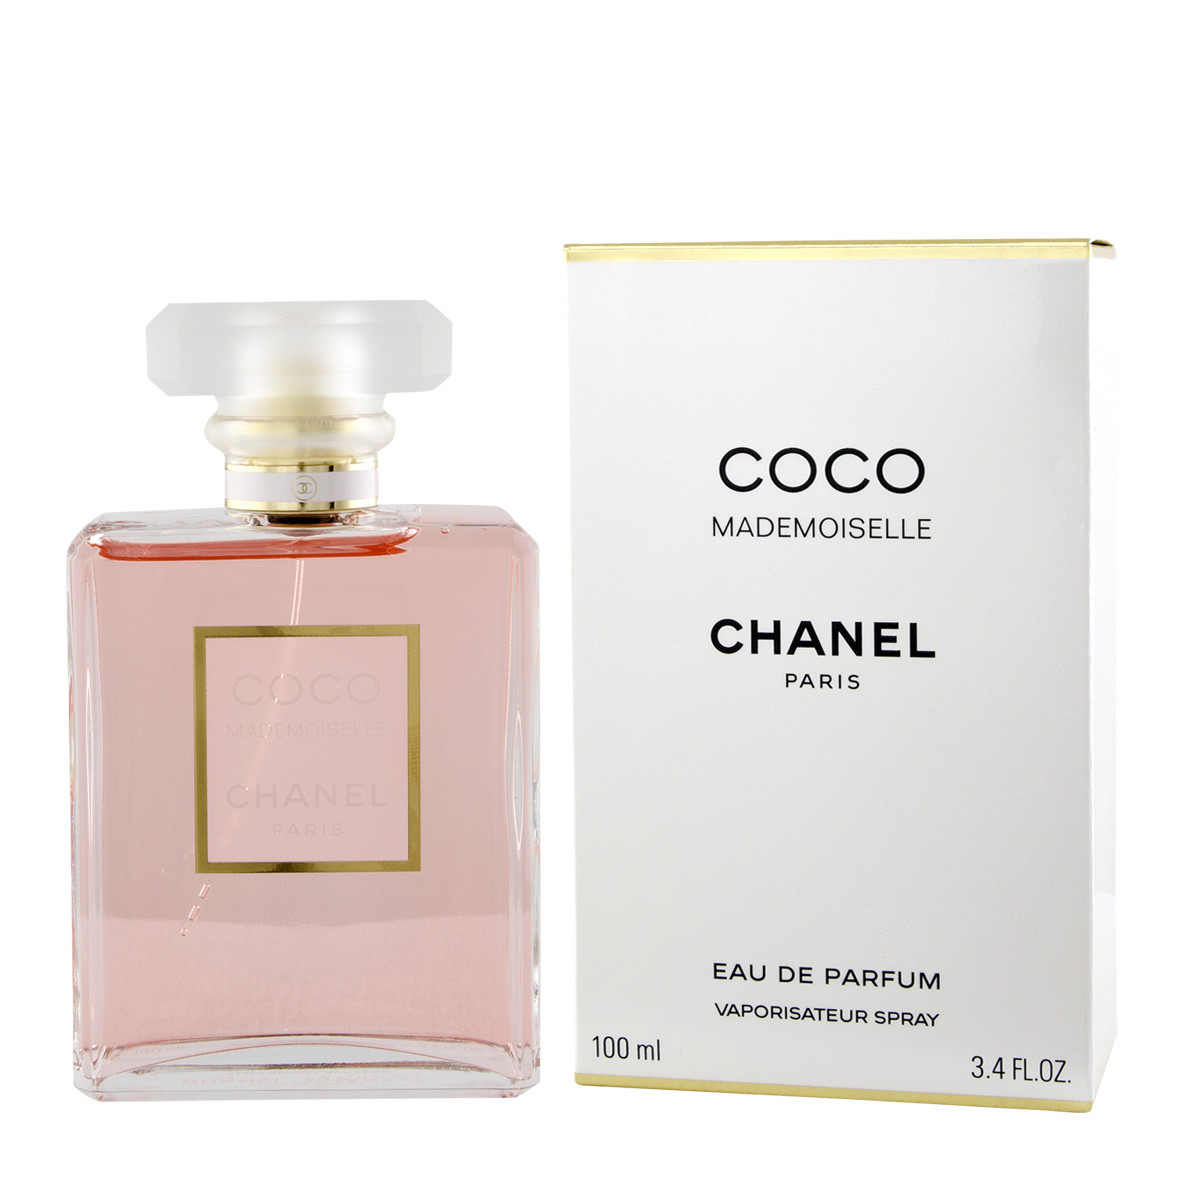 chanel coco mademoiselle eau de parfum 100 ml woman coco mademoiselle chanel marken. Black Bedroom Furniture Sets. Home Design Ideas